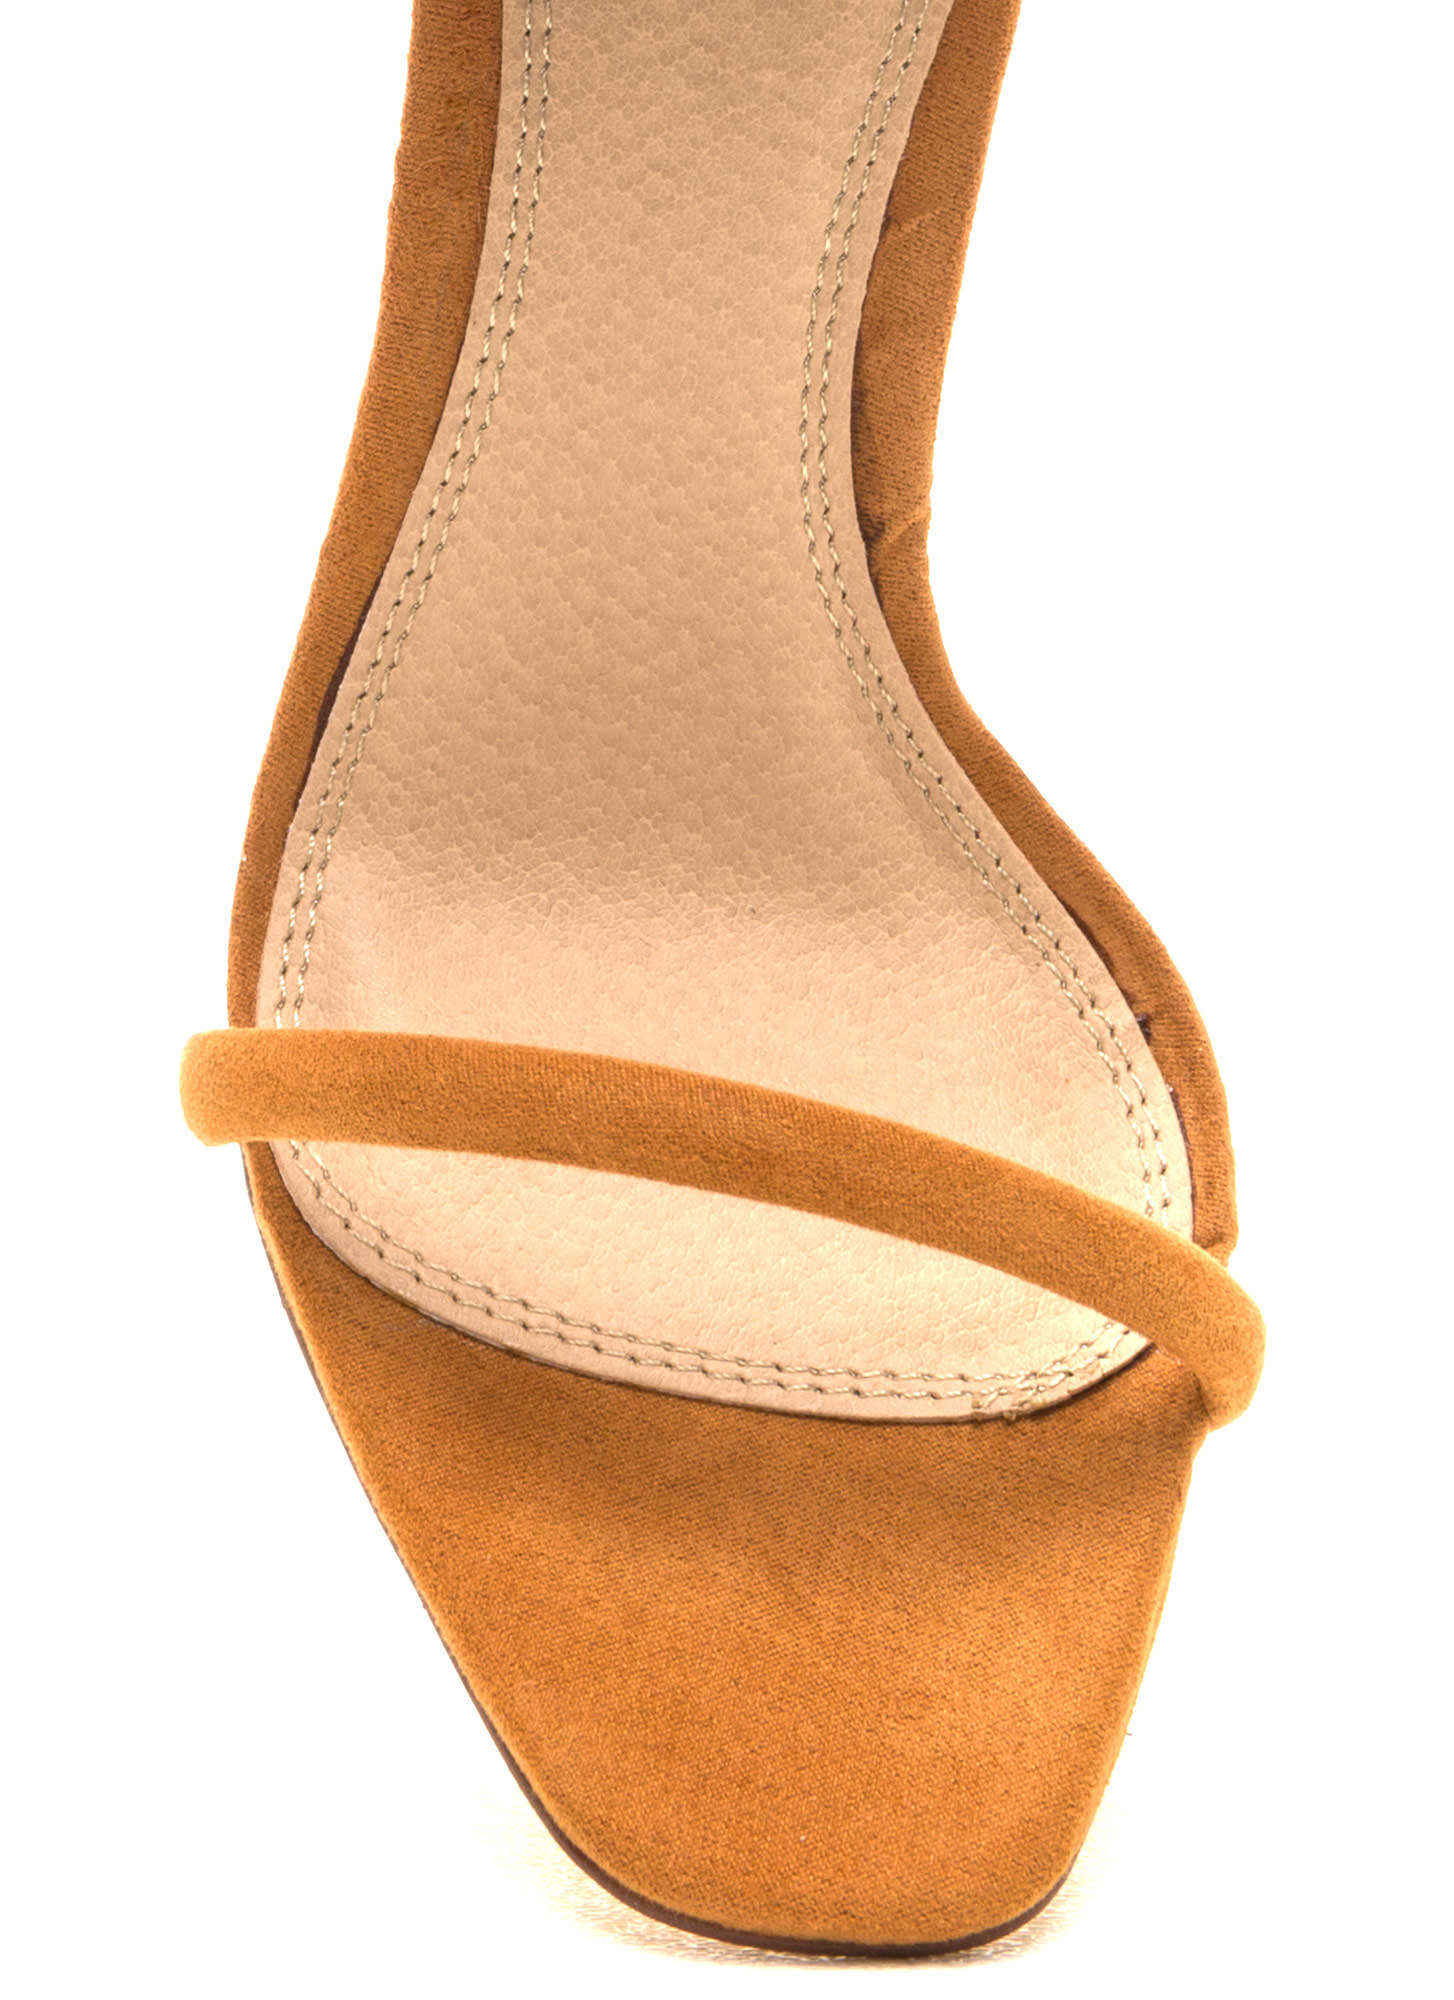 Just One Faux Suede Ankle Strap Heels TAN